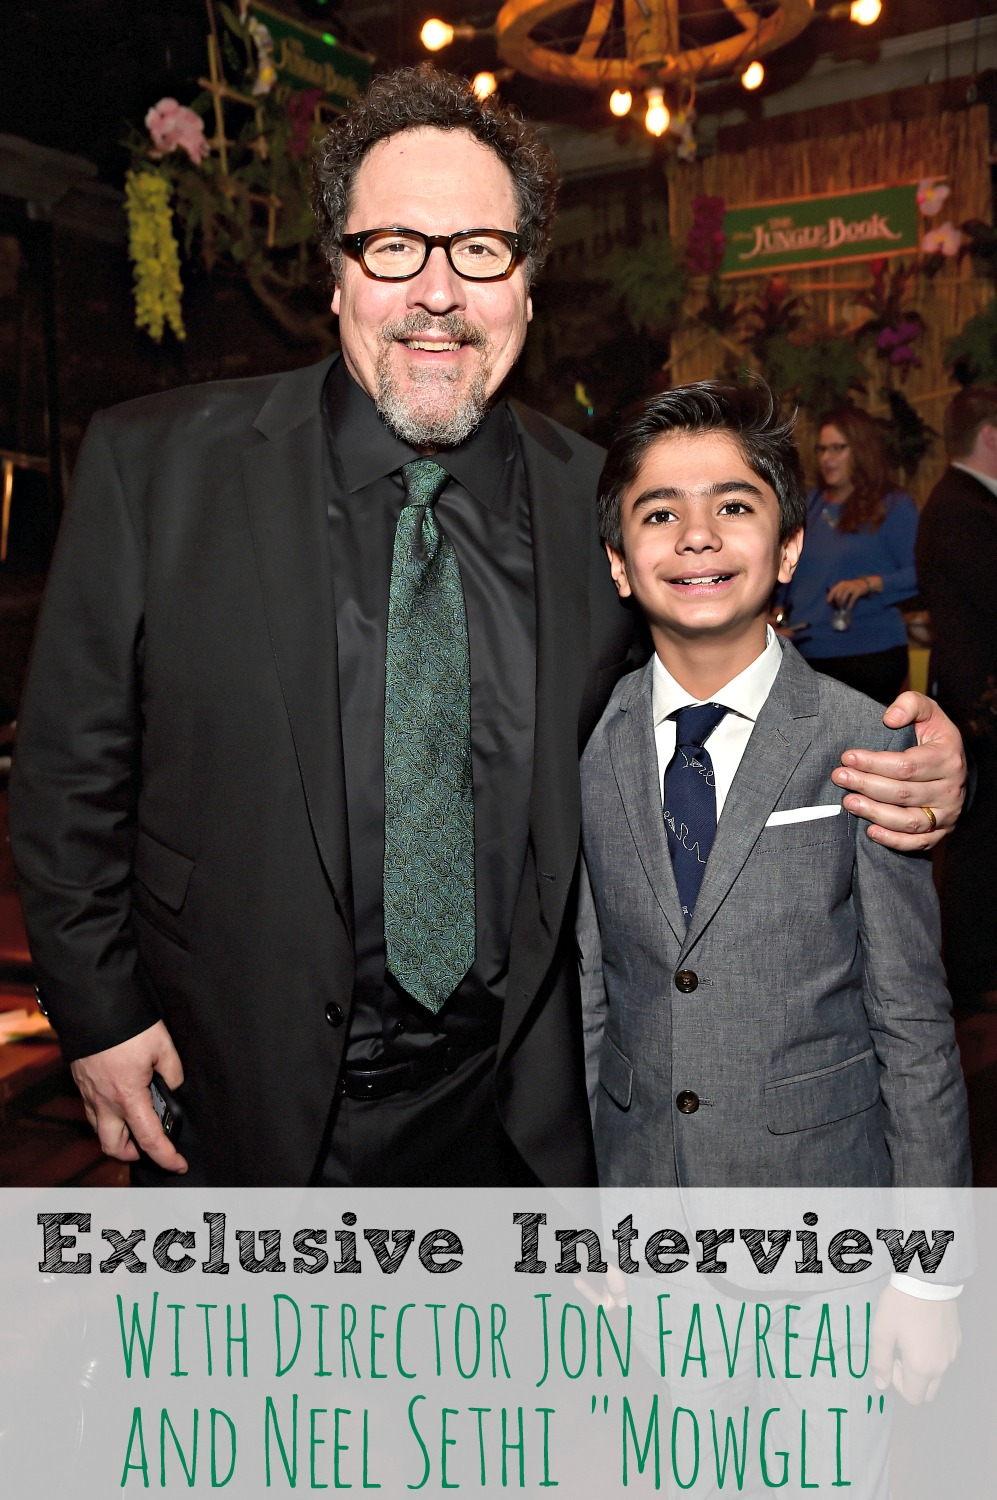 Exclusive Interview with Jon Favreau and Neel Sethi